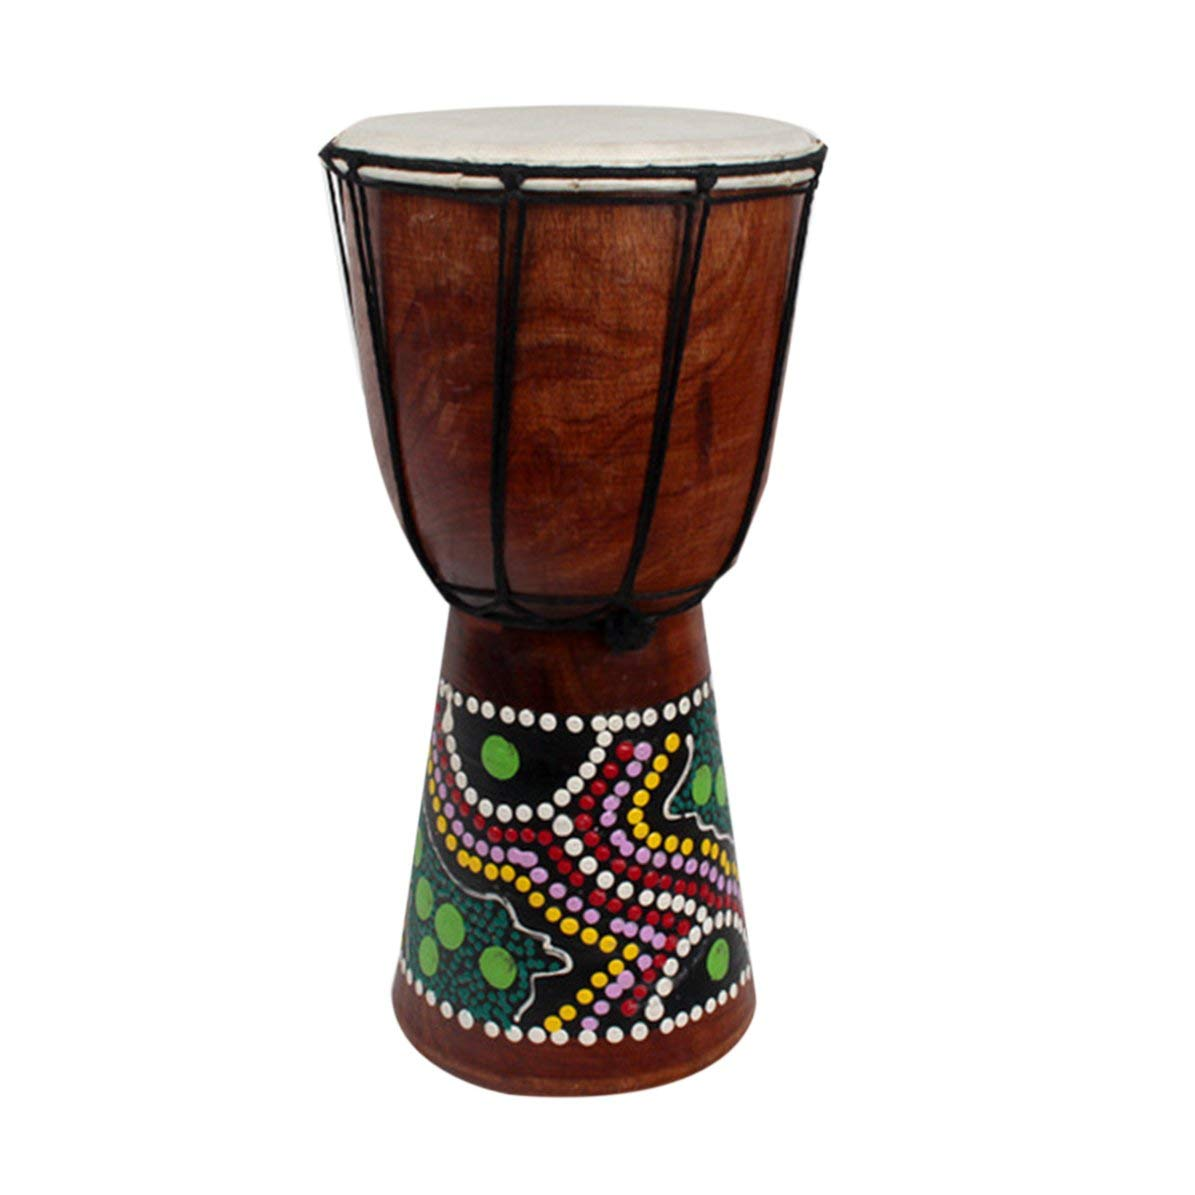 4 Inch African Djembe Percussion Hand Drum Mahogany Wooden Jambe Doumbek Drummer with Pattern Pure Goat Skin Surface by DoMoment